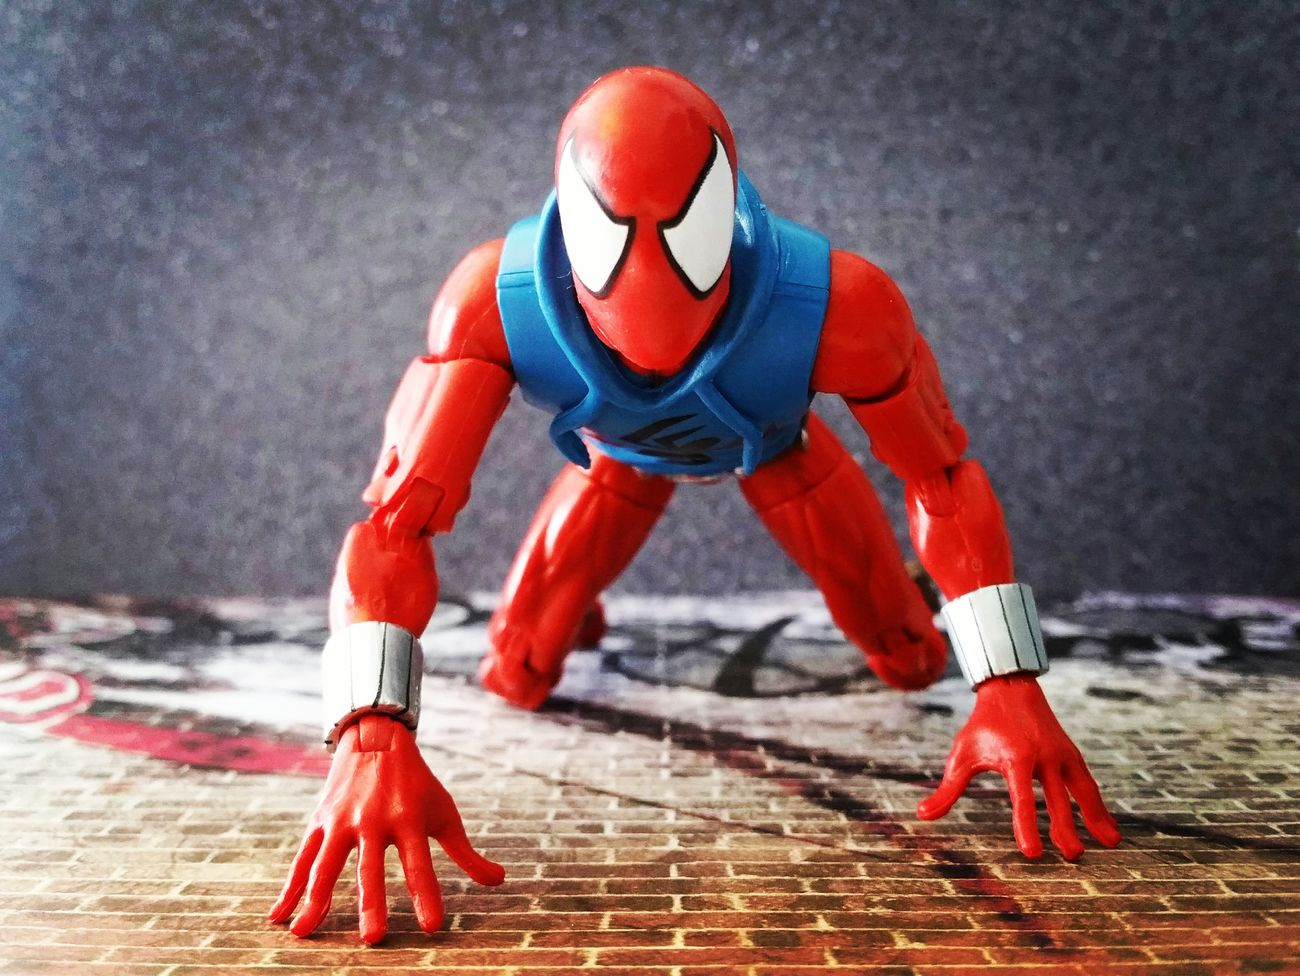 Only way is up.... Marvellegends Marvellegendscommunity Scarletspider Benreilly Spiderman Peterparker Spiderverse Marvelinfinite Articulatedcomicbookart Marvelactionfigure Marvelcomics Theamazingspiderman Hasbro Actionfigure Toycrewbuddies ACBA Toyphotography Marvel